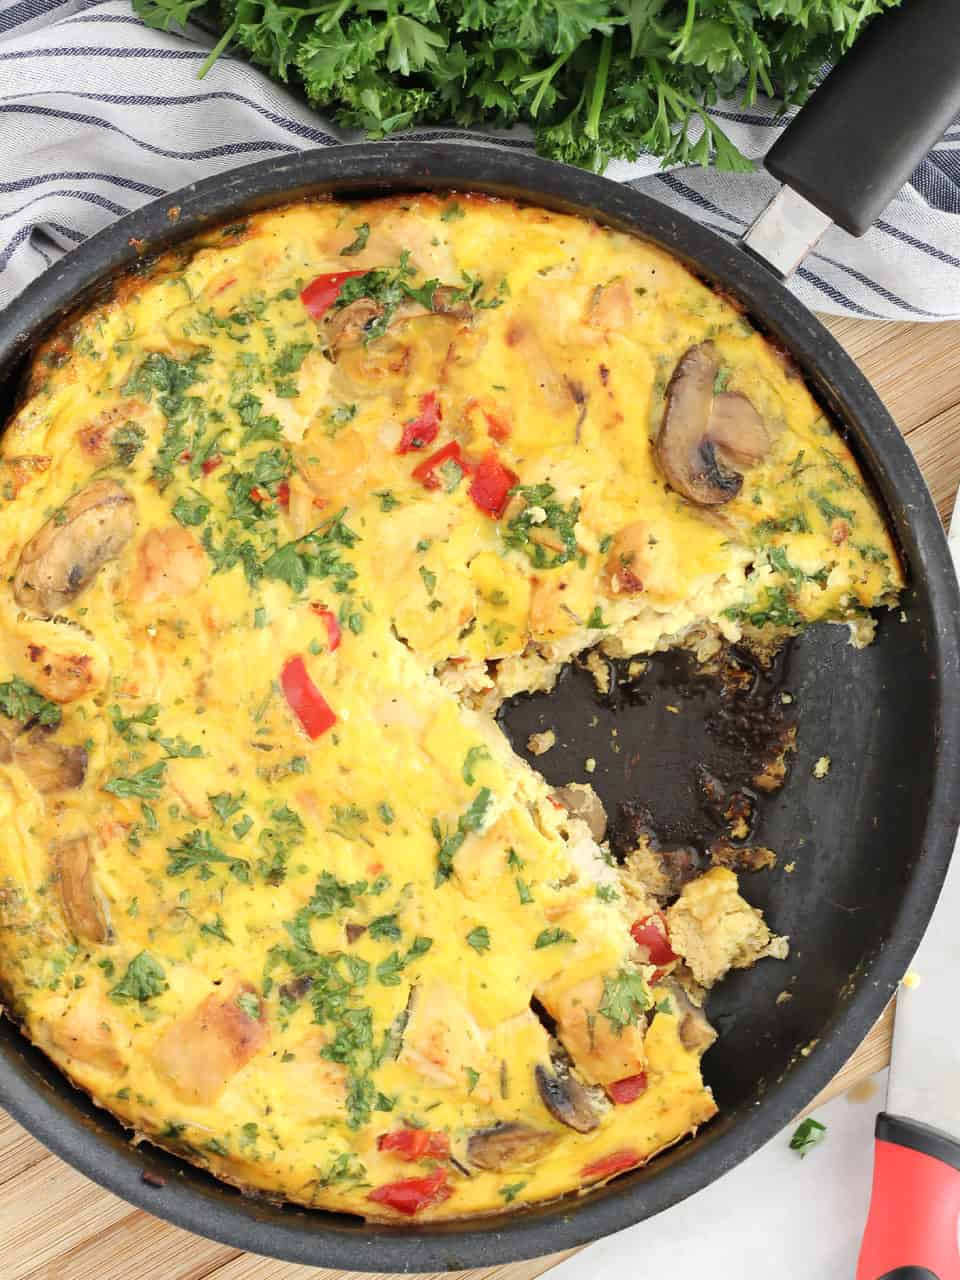 A frittata in a skillet with a slice cut out of it.